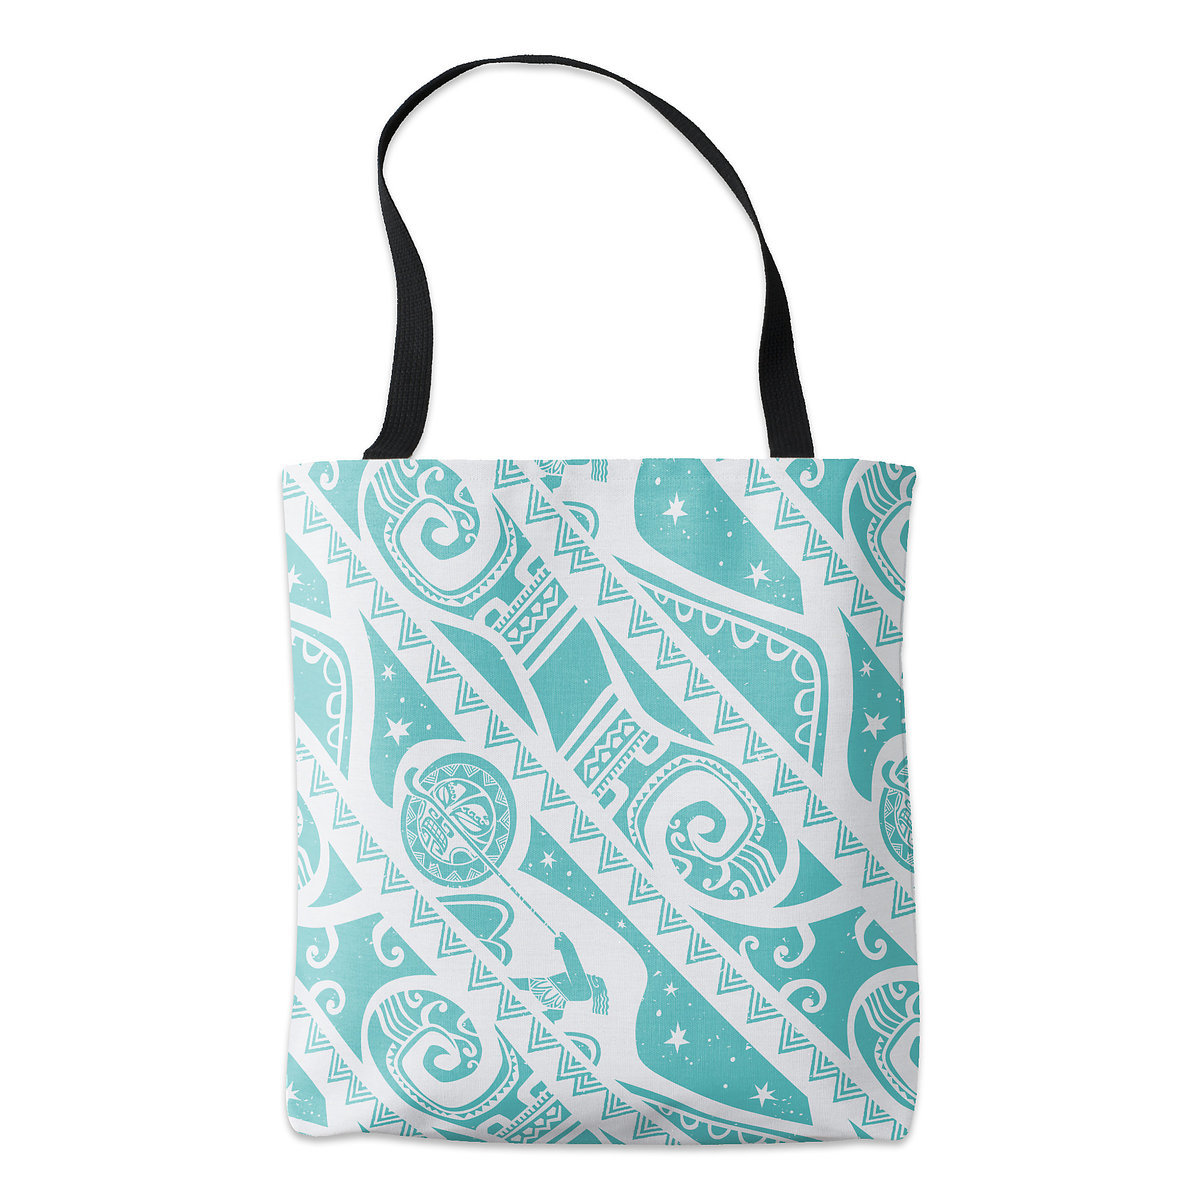 Adorable Tote Bags at shopDisney! 3